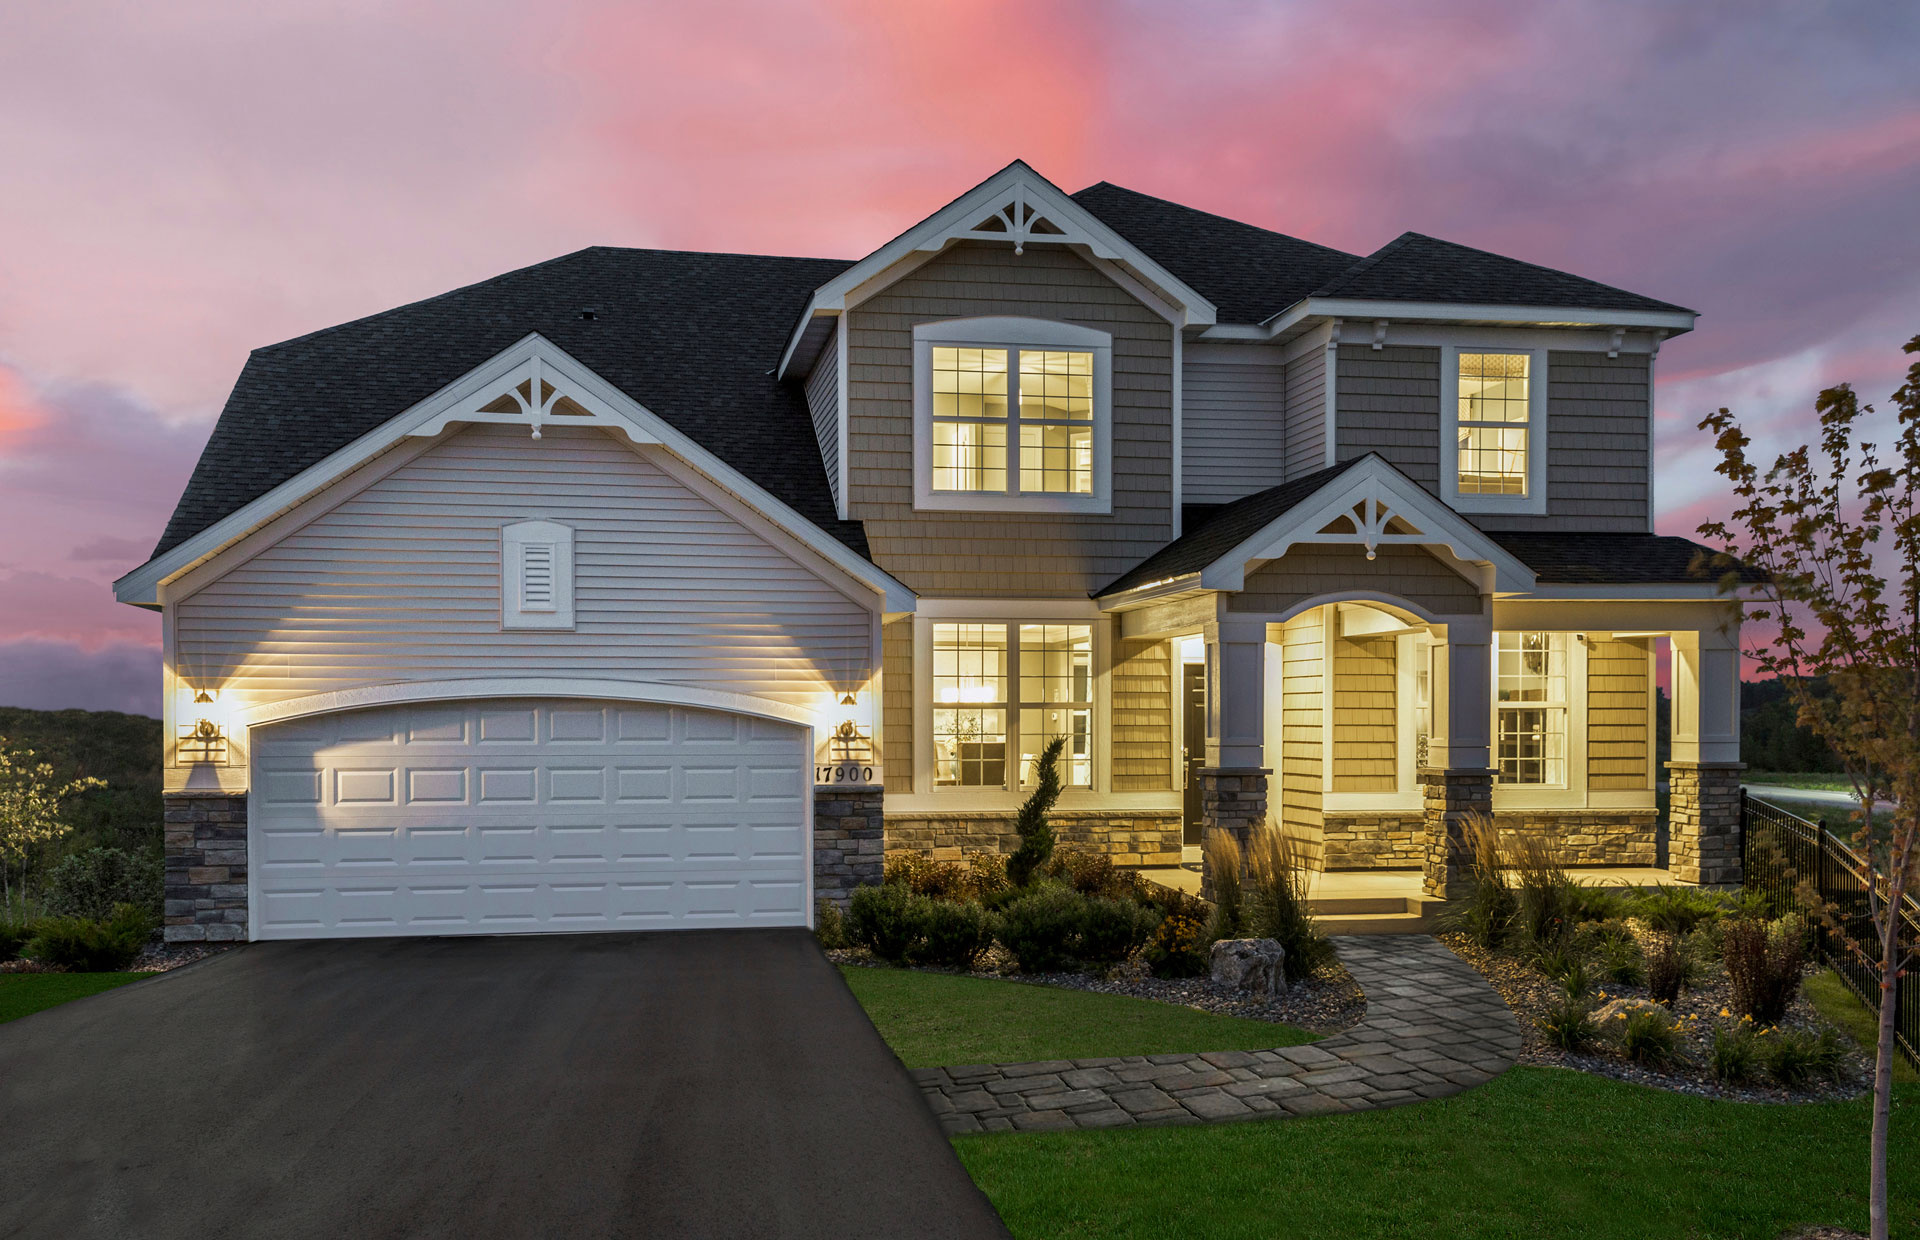 Territorial Trail - Expressions Collection By Pulte Homes image 8